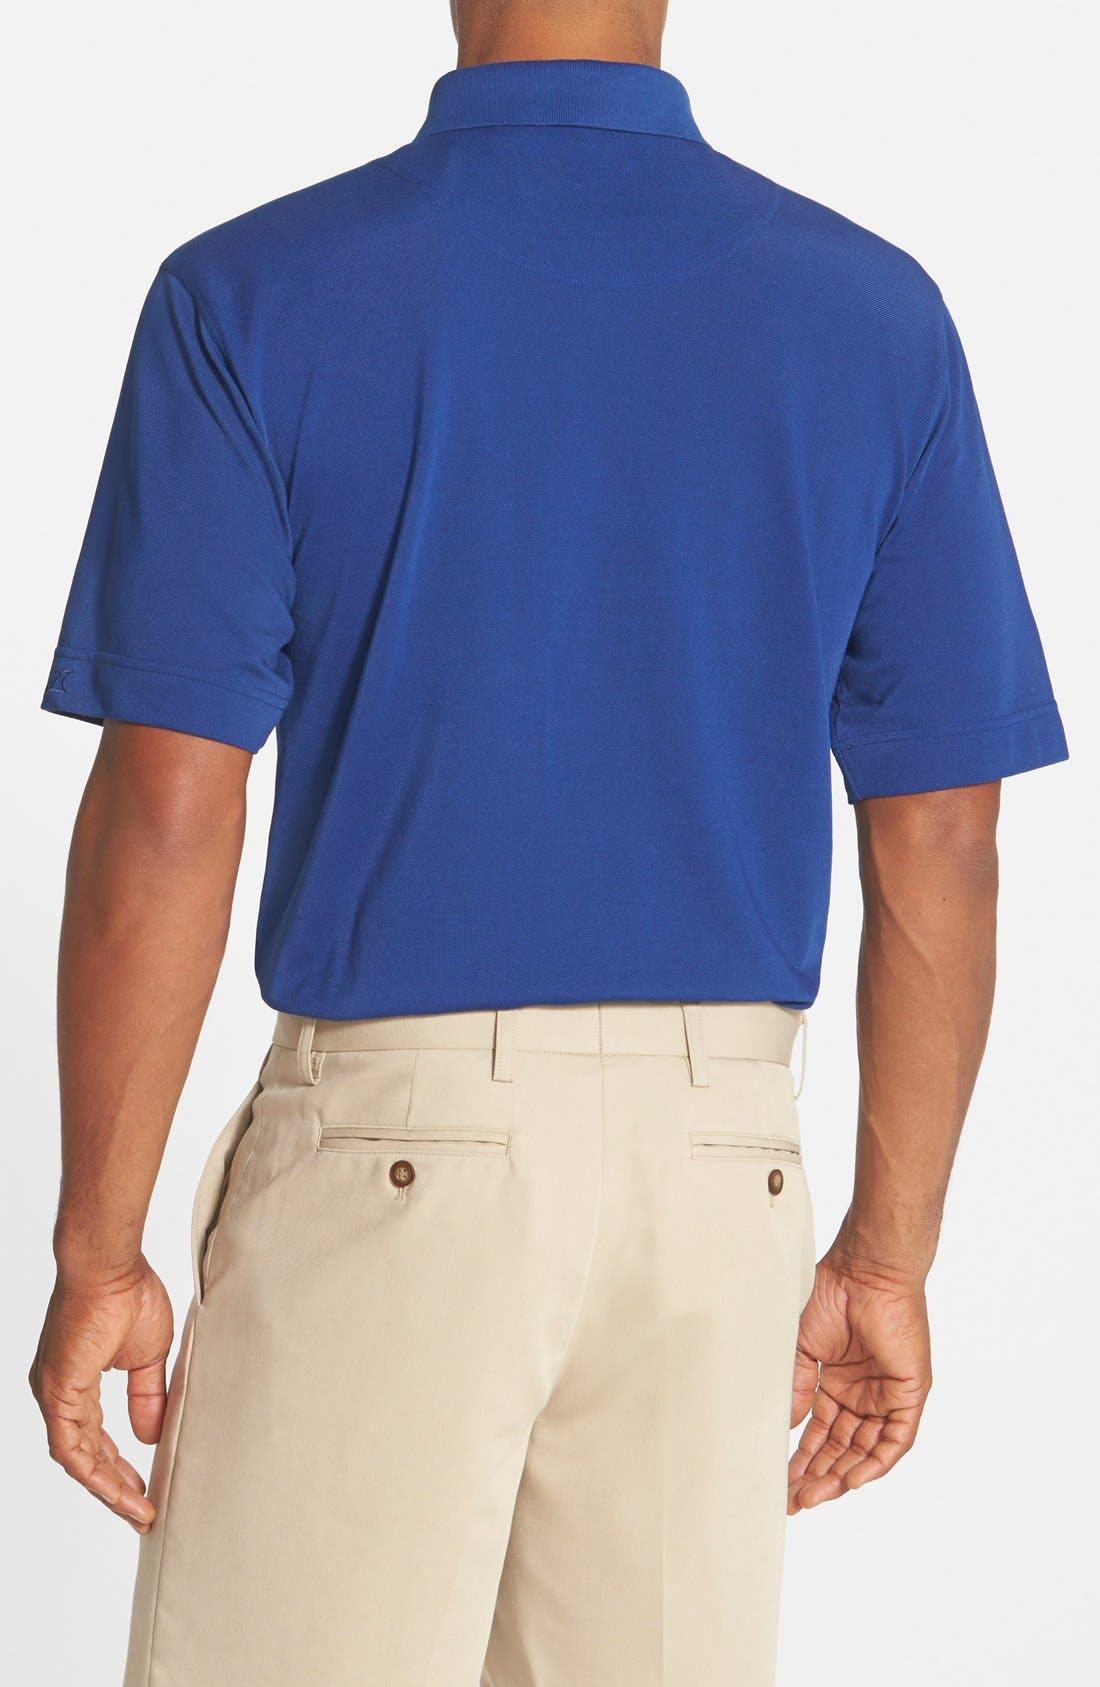 Alternate Image 2  - Cutter & Buck 'Championship' Classic Fit DryTec Golf Polo (Online Only)